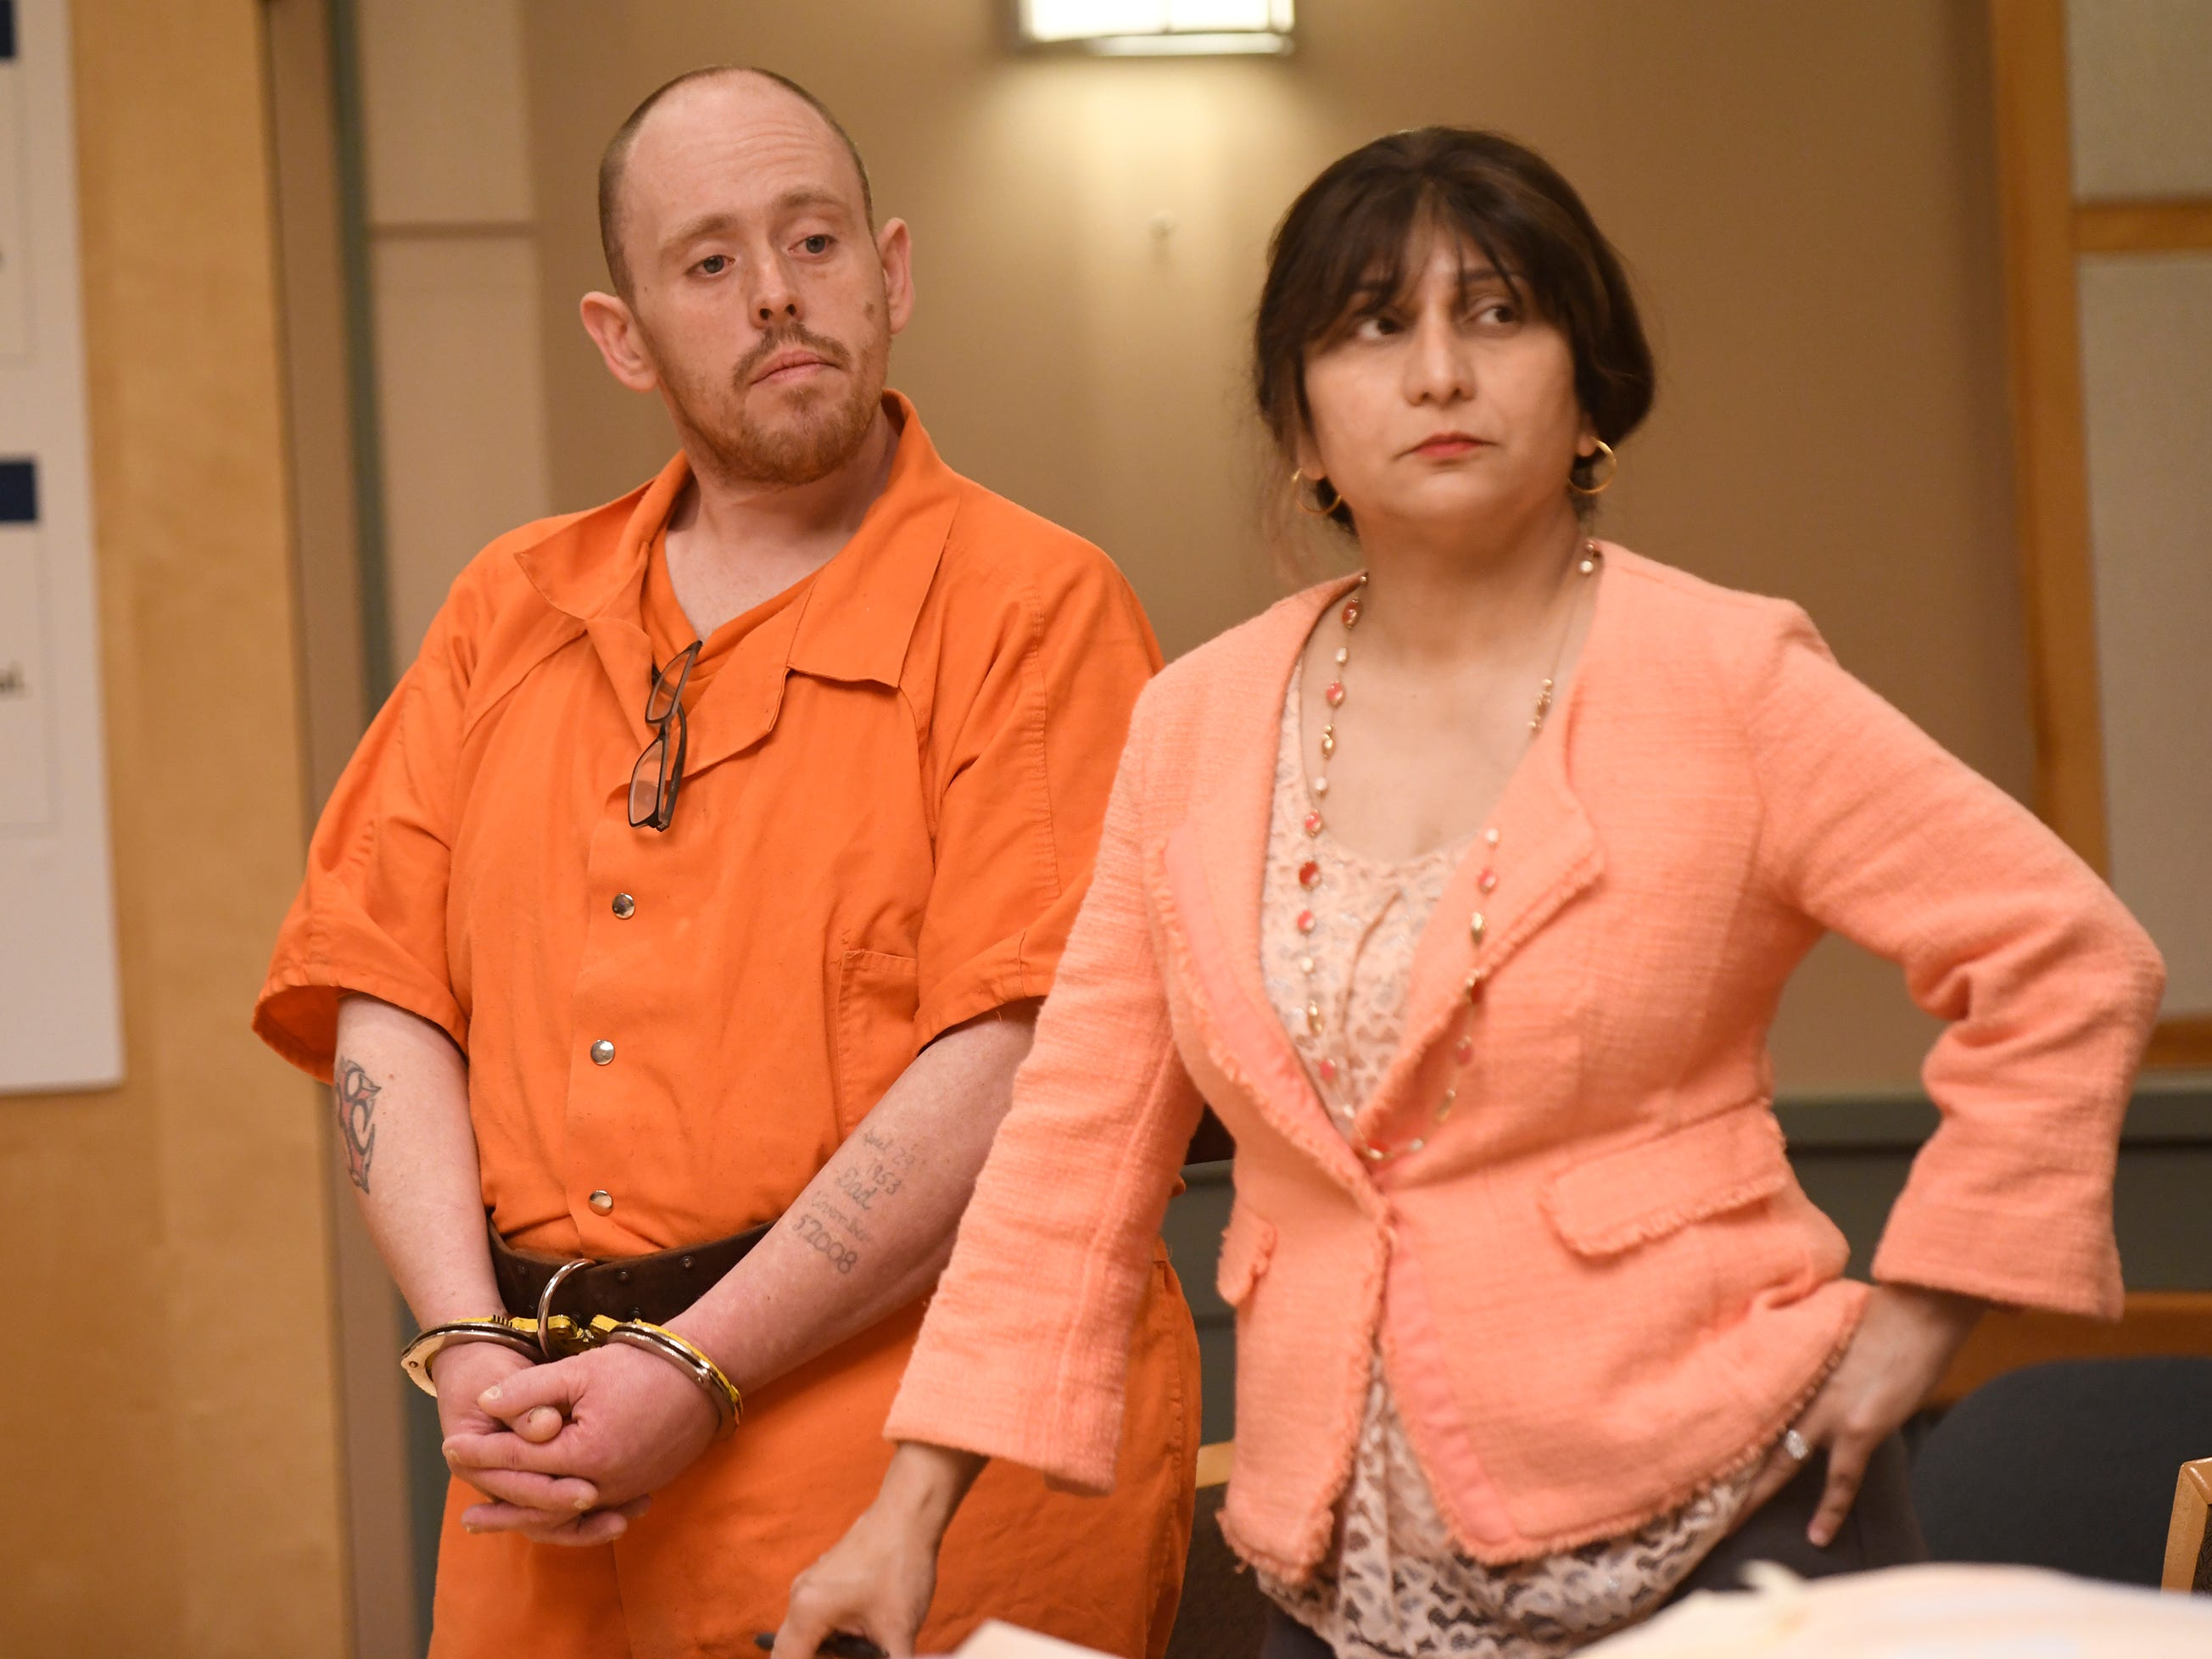 Leonard J. Zawojski and his defense attorney, Dinaz Akhtar, listen to Assistant Prosecutor Maghan Price in Cumberland County Superior Court on Thursday. Zawojski is charged with using a Taser to sexually assault a woman.